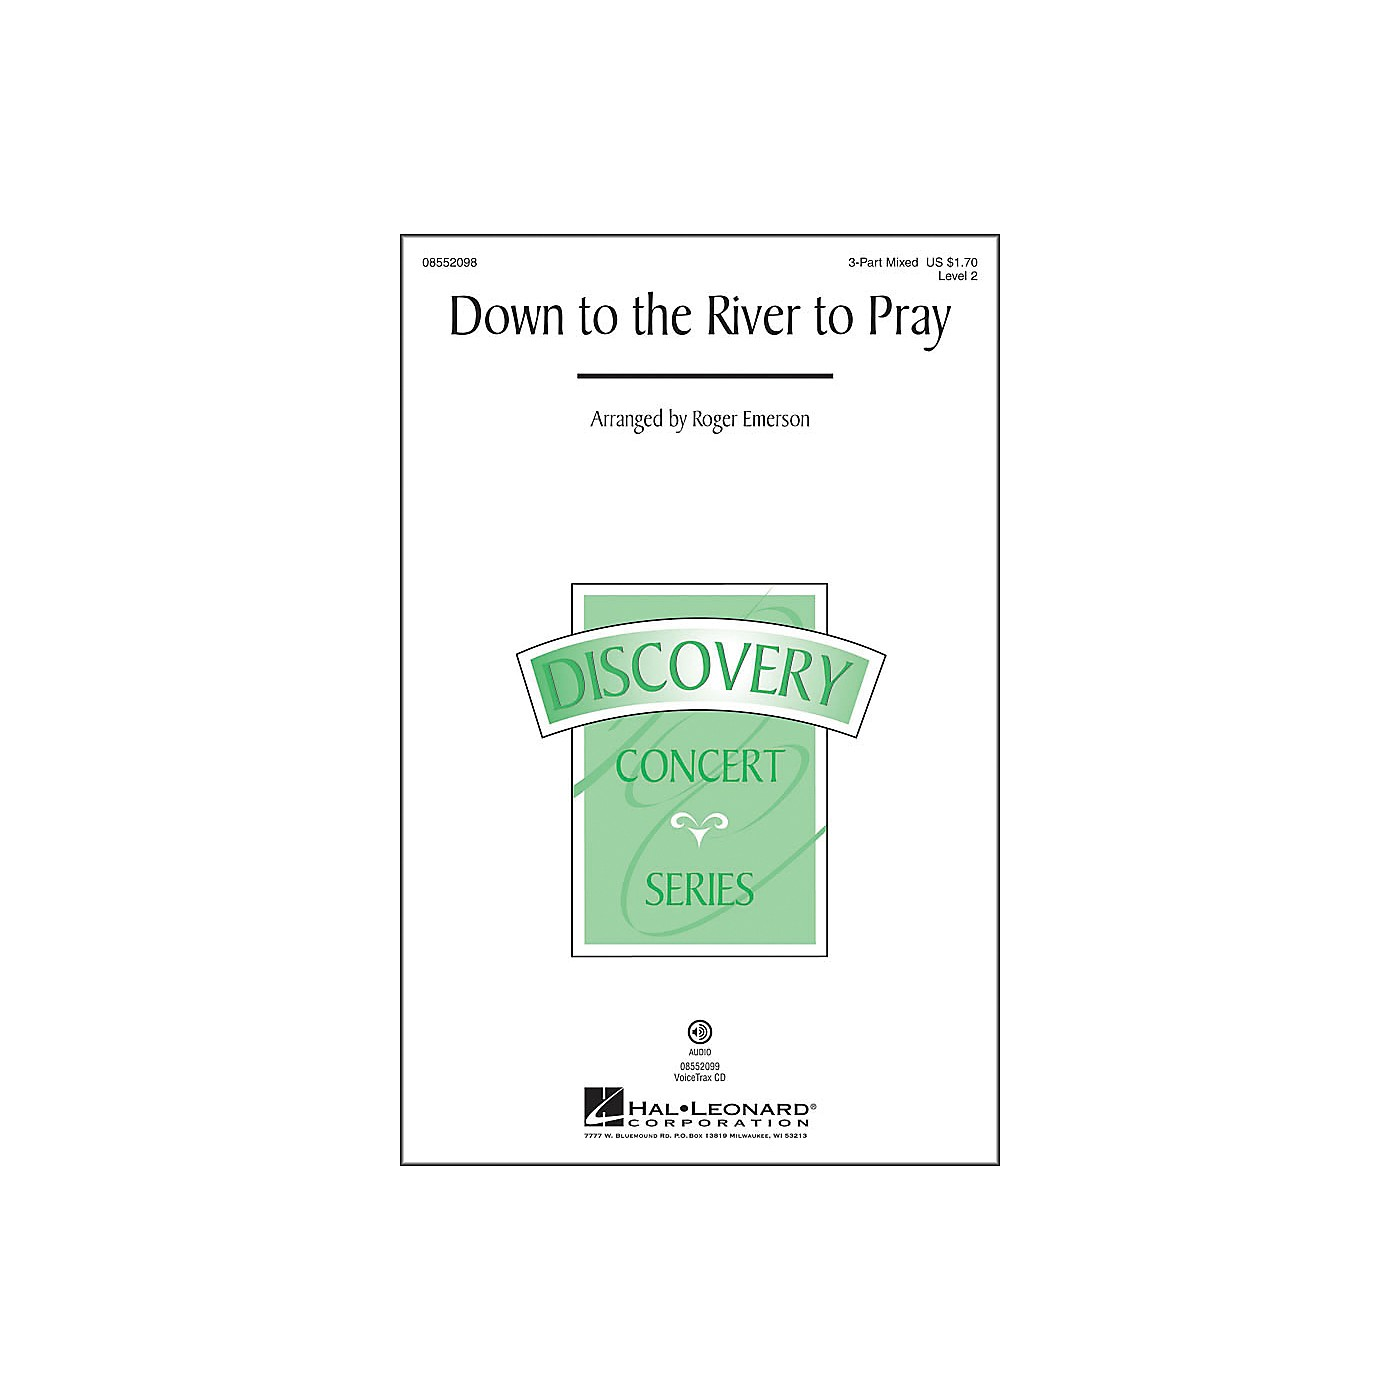 Hal Leonard Down To The River To Pray 3-Part Mixed thumbnail